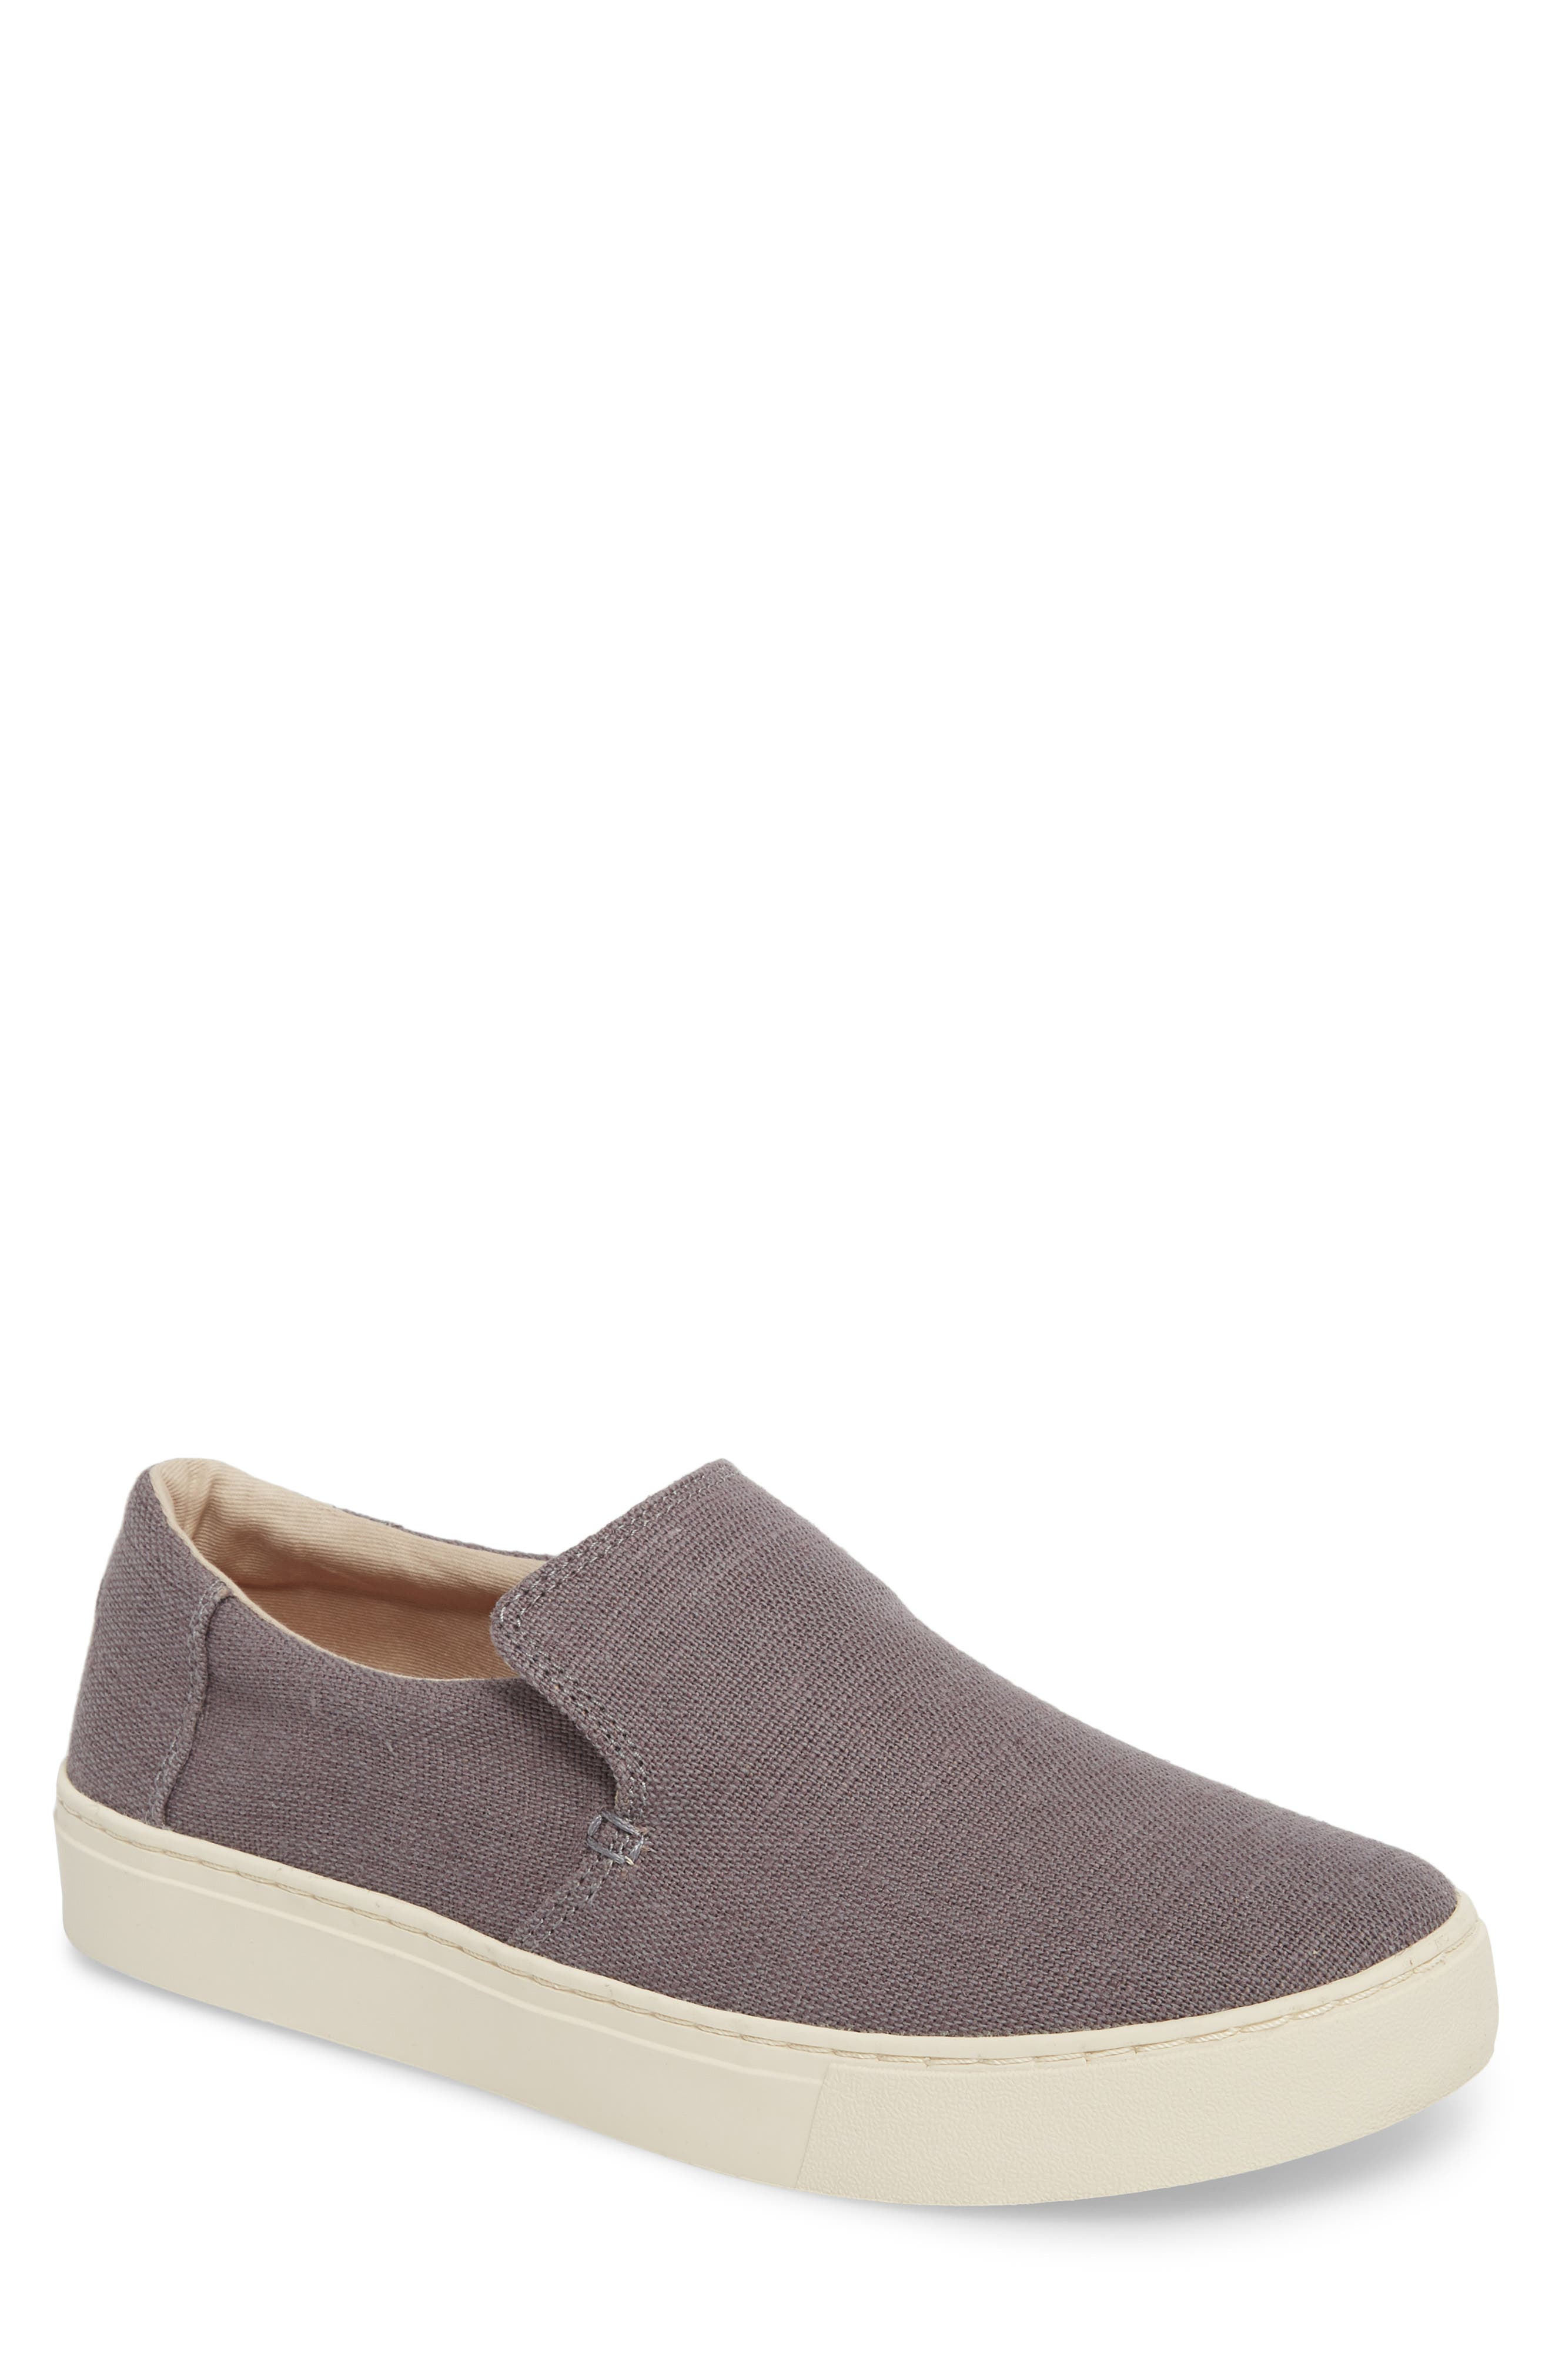 Loma Slip-On Sneaker,                             Main thumbnail 1, color,                             SHADE HERITAGE CANVAS